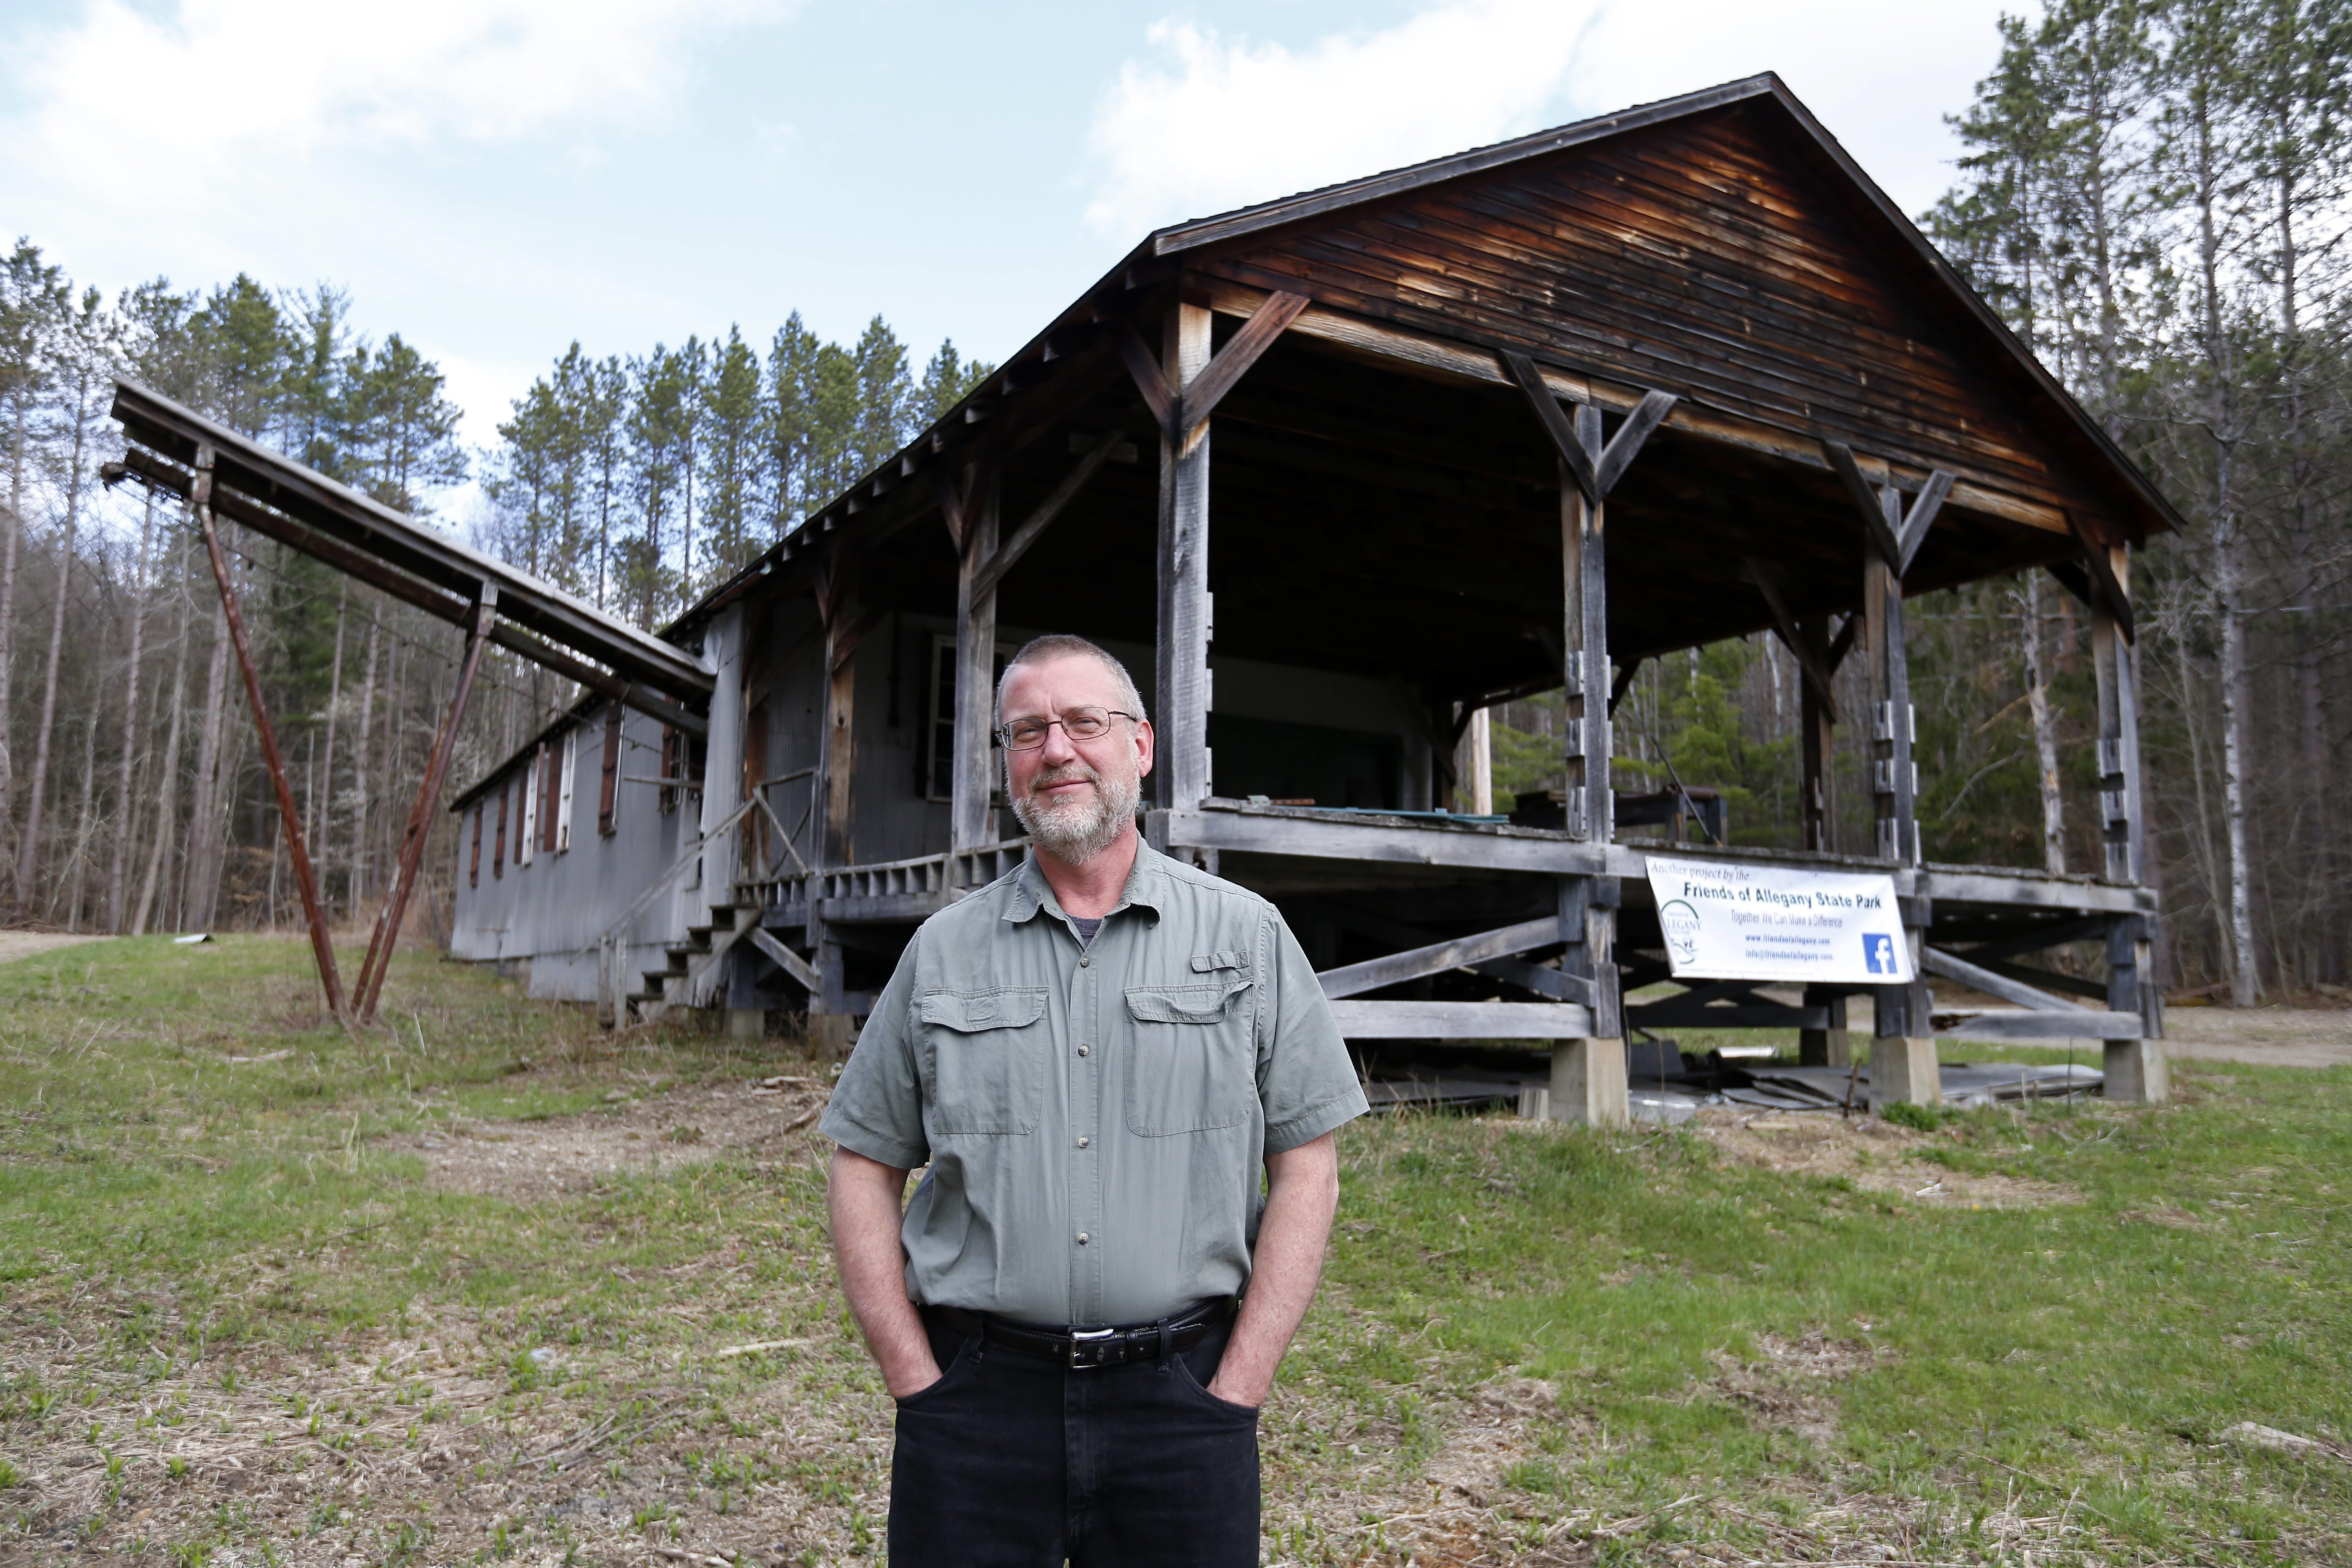 Paul J. Crawford is president of Friends of Allegany State Park, the volunteer organization whose efforts are underway to restore the Red House Sawmill, which the state closed in 1997. On the agenda for work are siding and window replacement, as well as structural repairs.